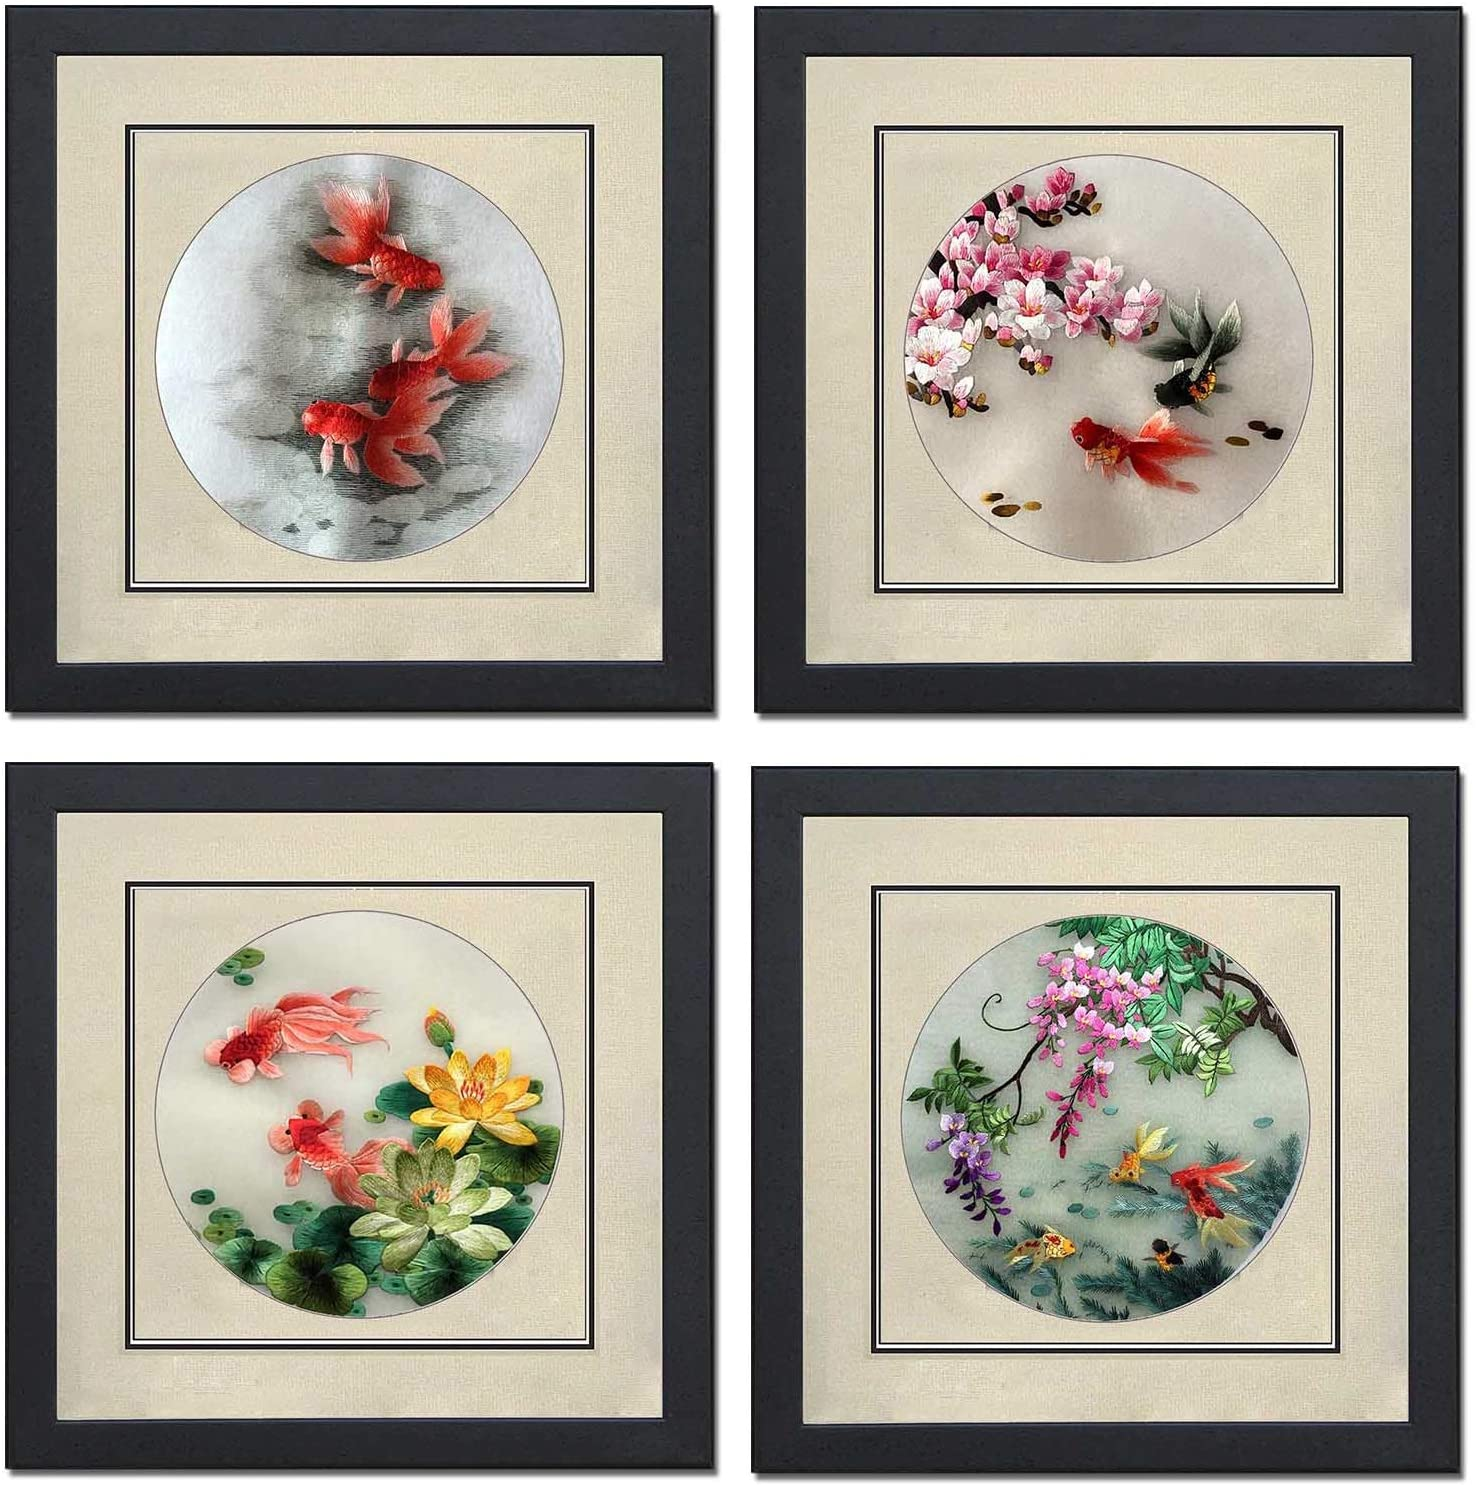 Ozlvii Silk Art 100% Handmade Embroidery Mixed Group Japanese Koi Framed Fish Painting Wedding Gift Oriental Asian Wall Art Decoration Artwork Tapestry Hanging 41011WF & 41012WF & 41013WF & 41014WF